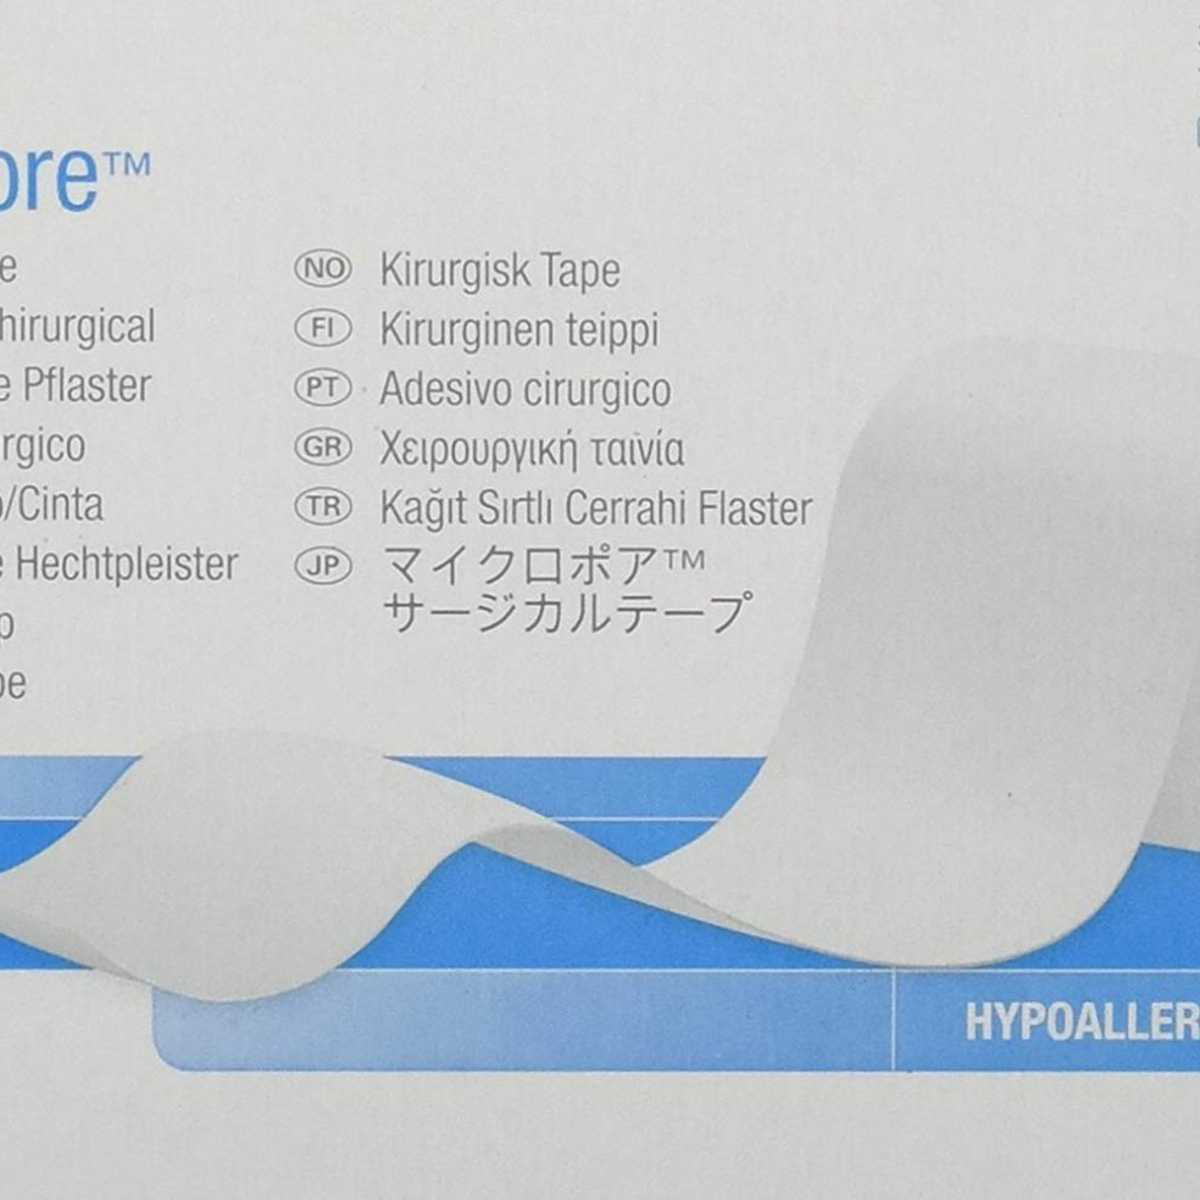 3m Micropore Paper Surgical Tape 7. 5cm x 9.14m (3in x 10yds)